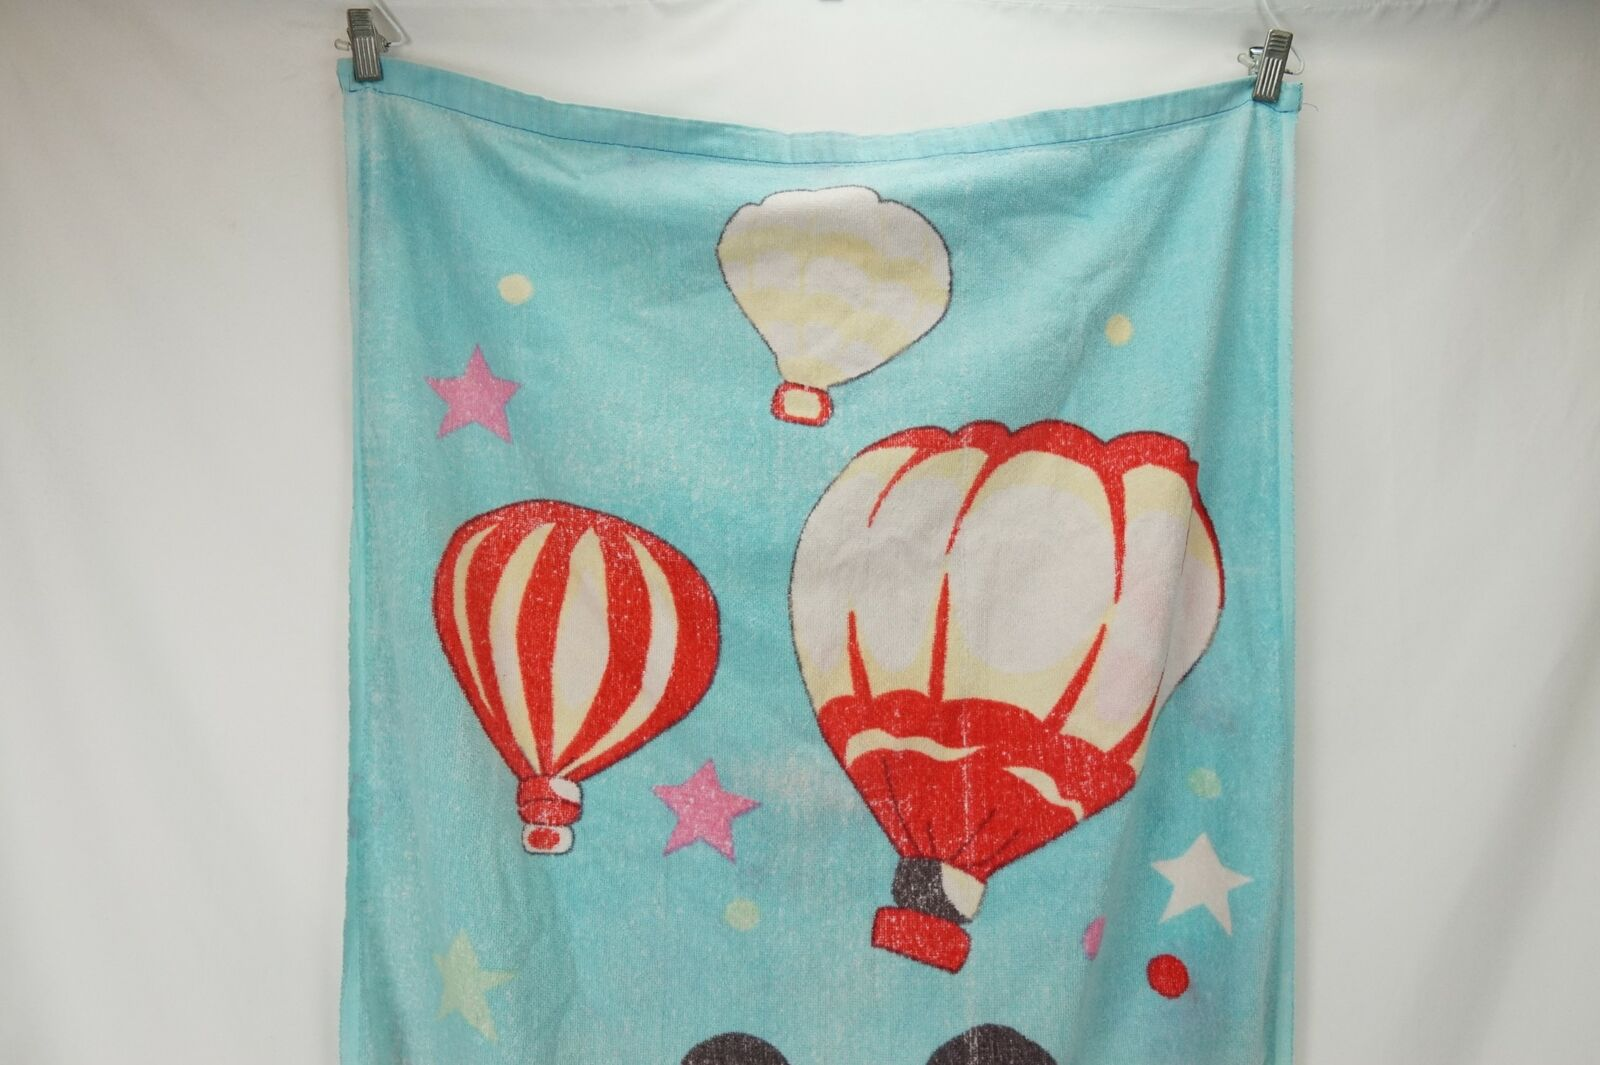 Vintage Mickey Mouse Hot Air Balloon Design Beach Towel Size W-28 L-53